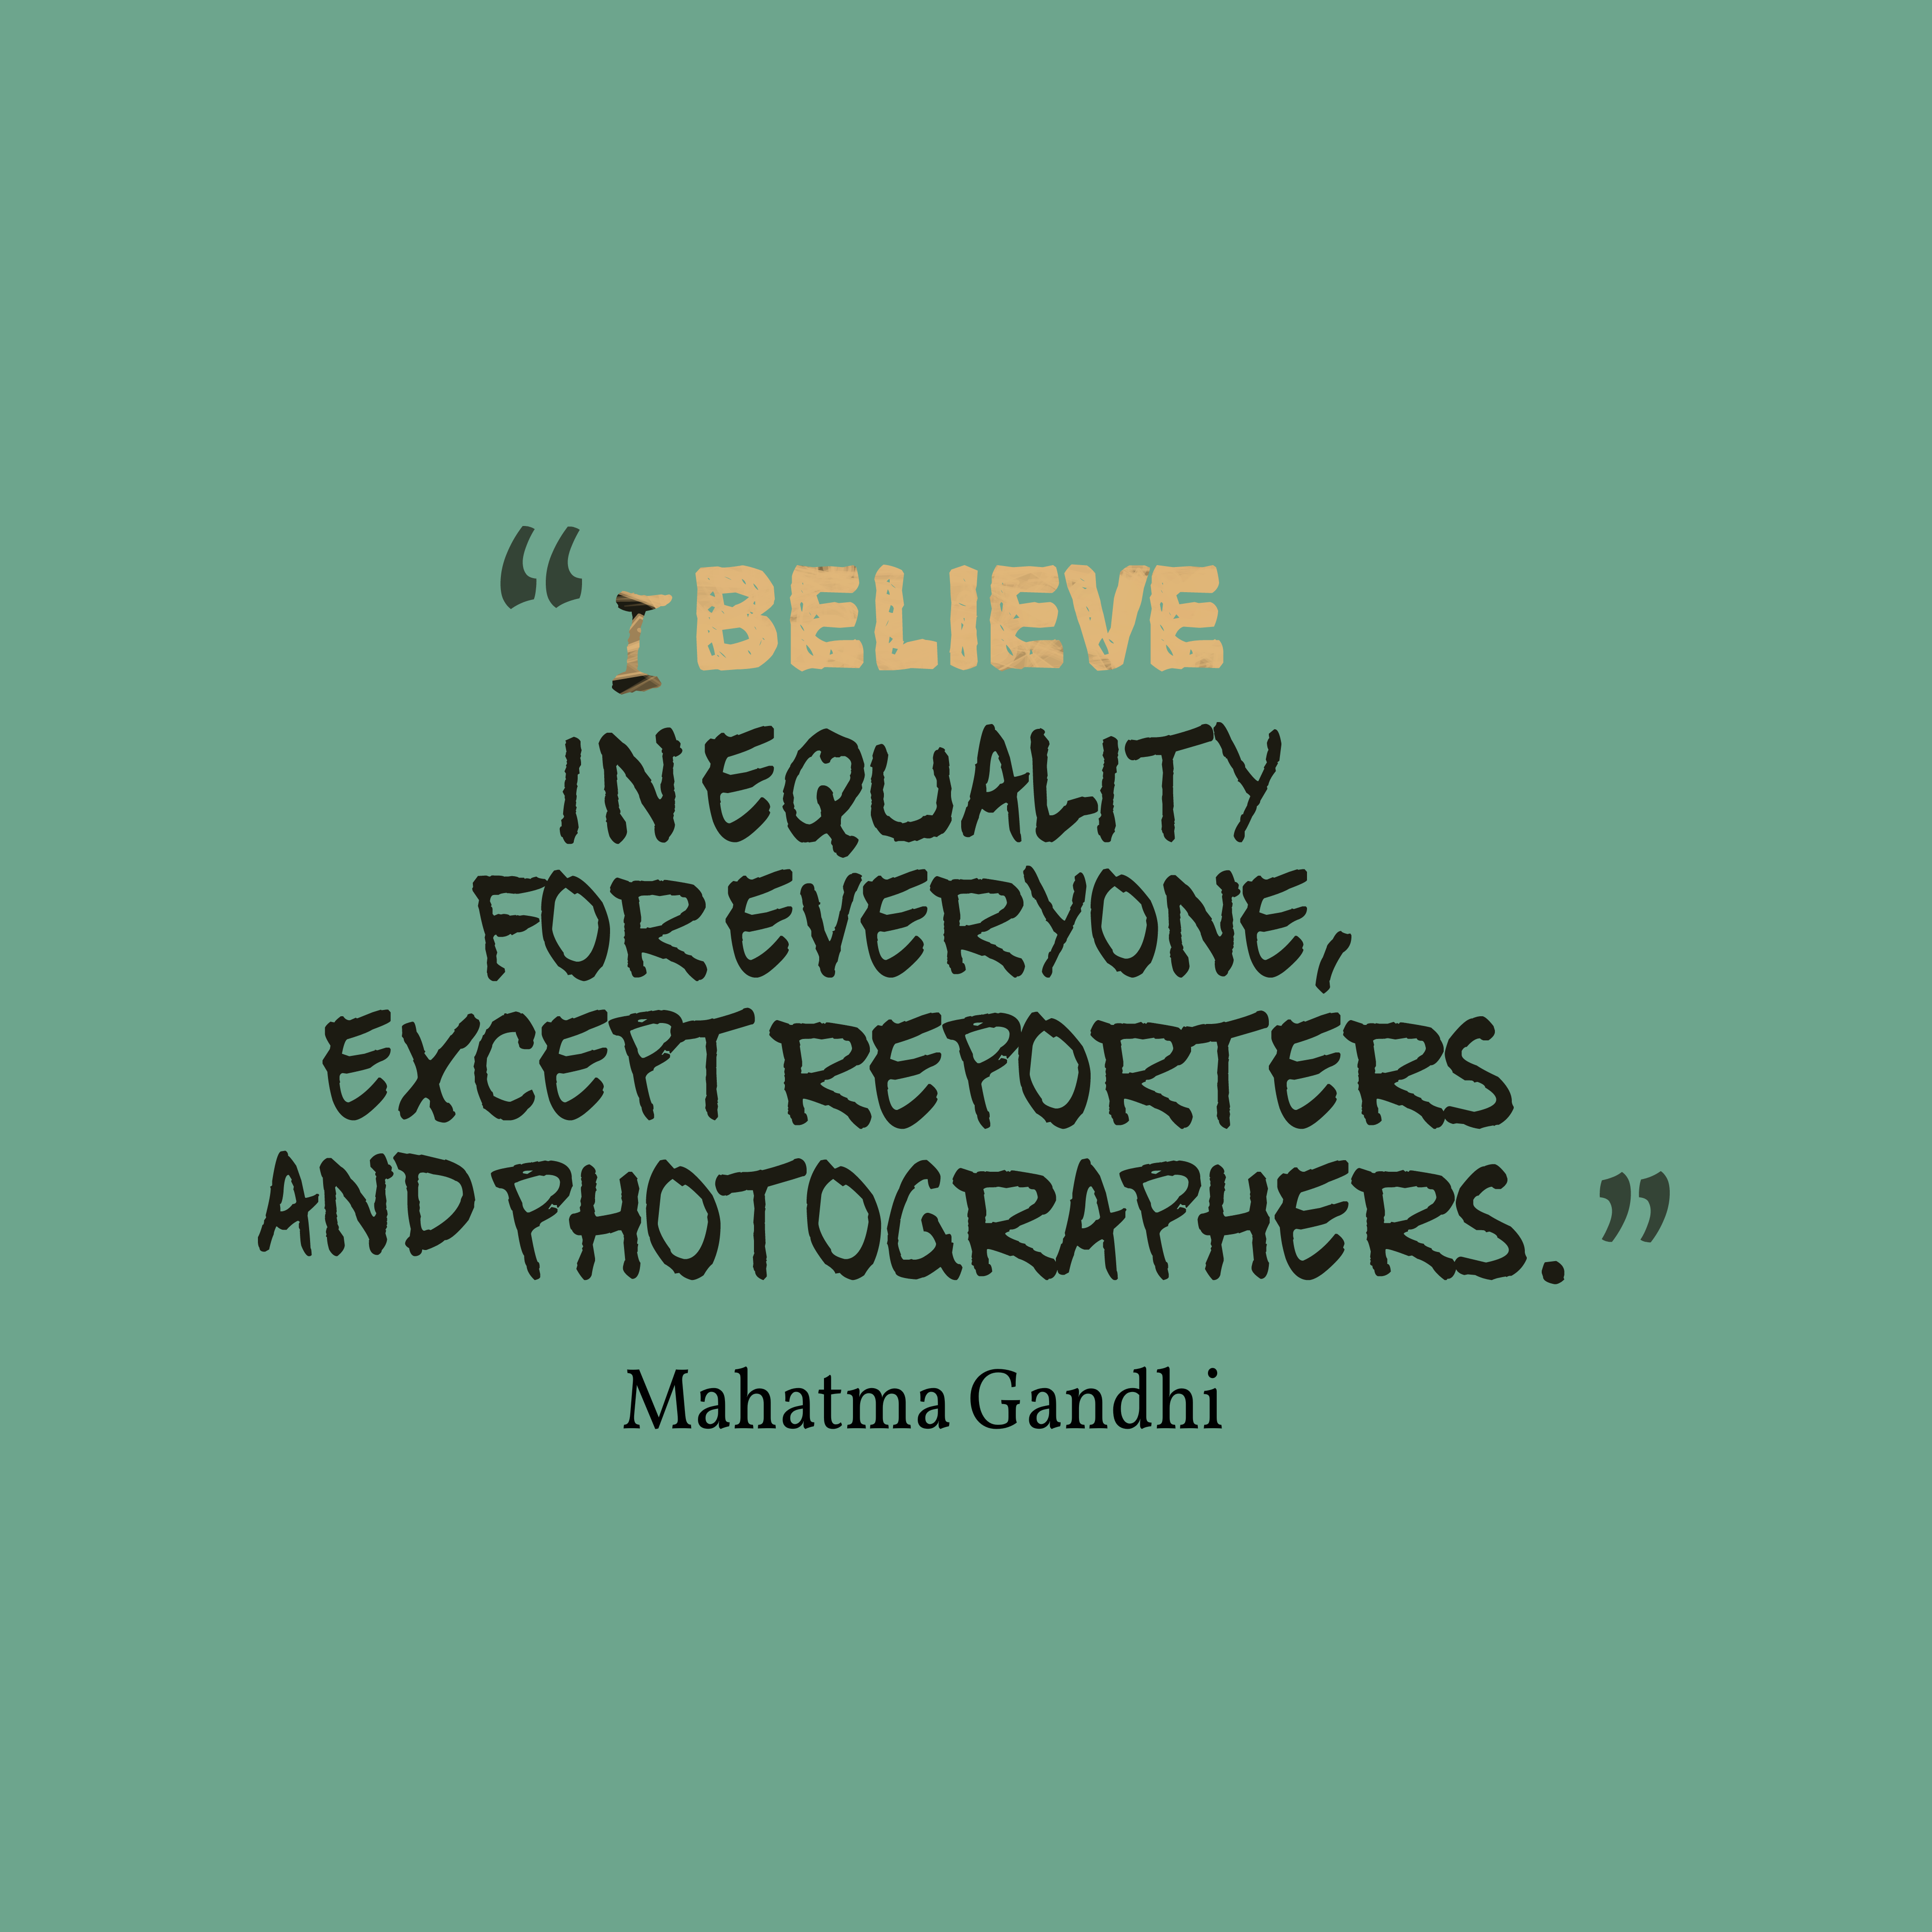 Mahatma Gandhi quote about equality.